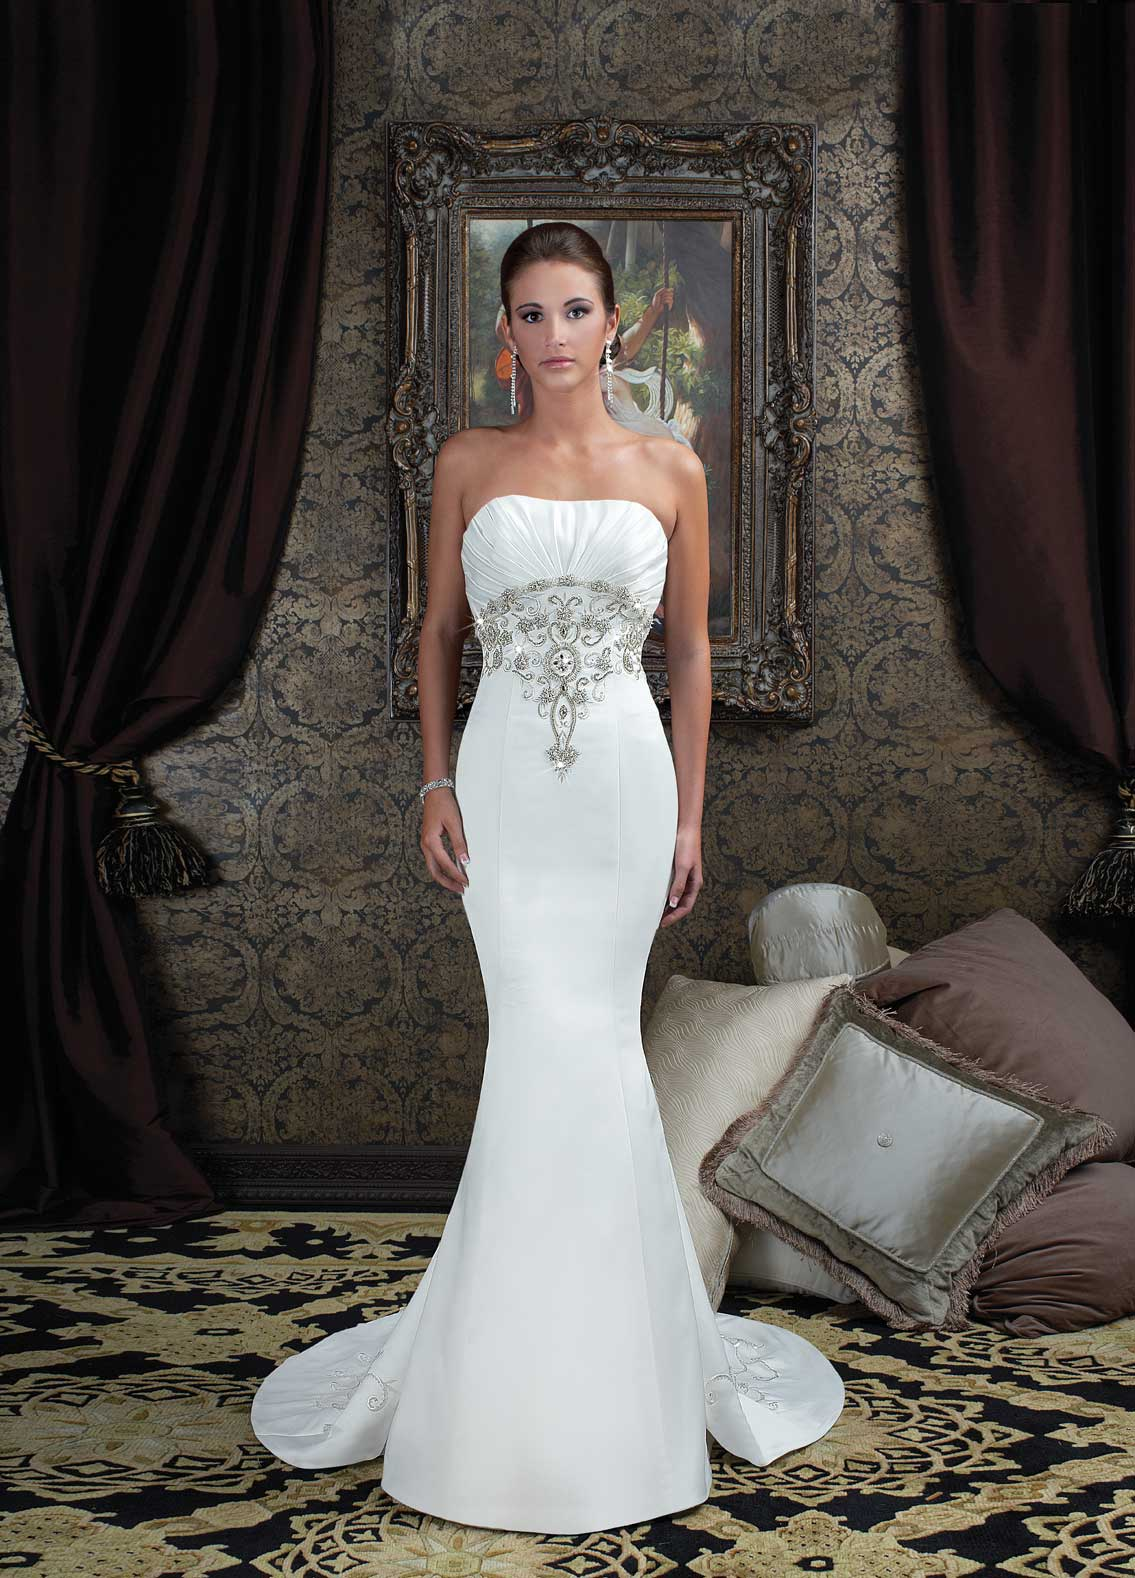 Couture Mermaid Wedding Dresses Designs - Wedding Dress